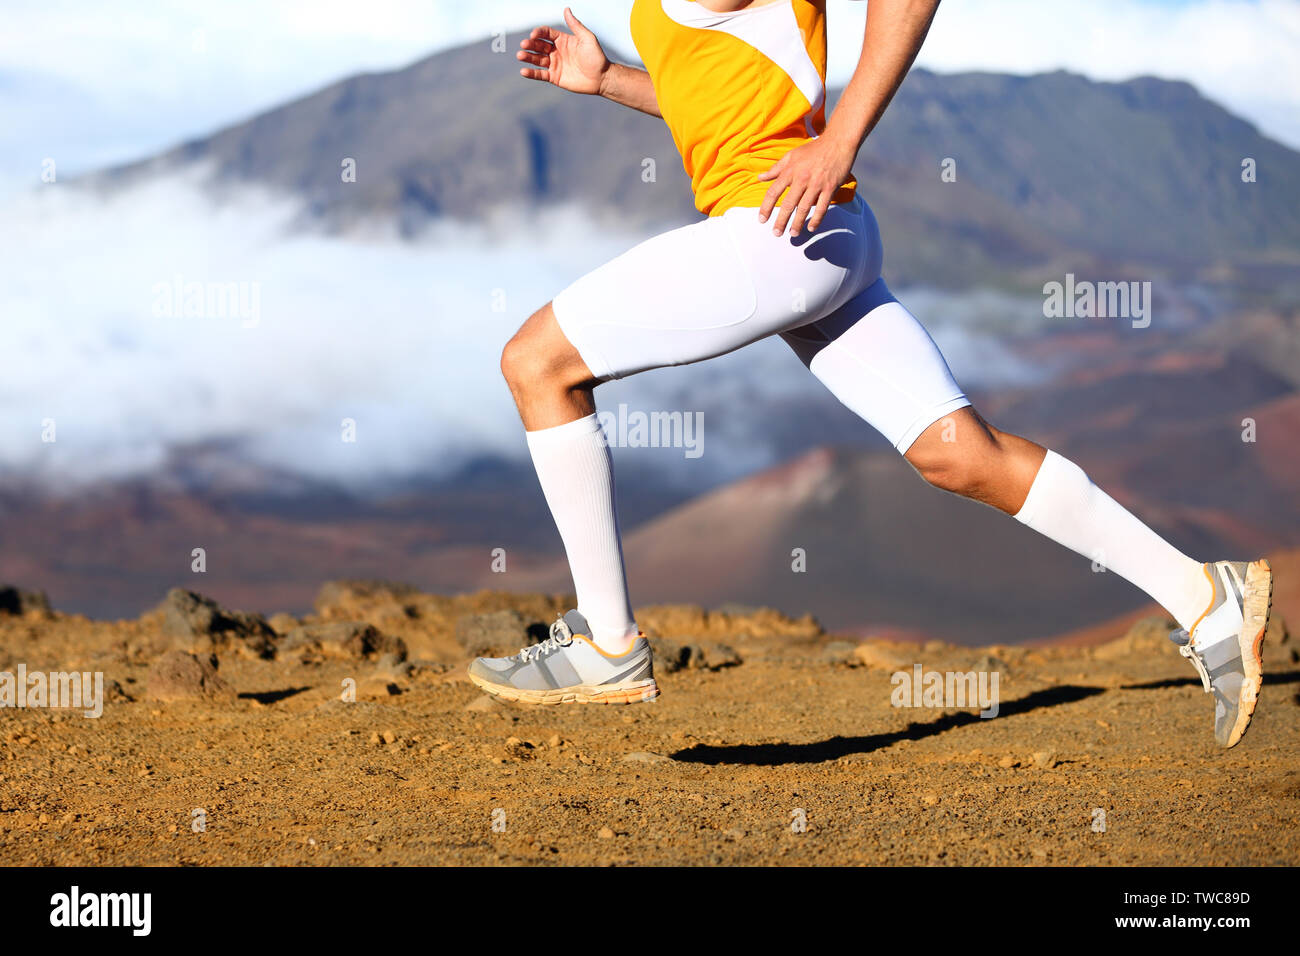 Trail running - male runner in cross country run. Closeup of strong legs and running shoes sprinting at speed. Male athlete fitness runner in compression sports clothing, socks and shorts. - Stock Image